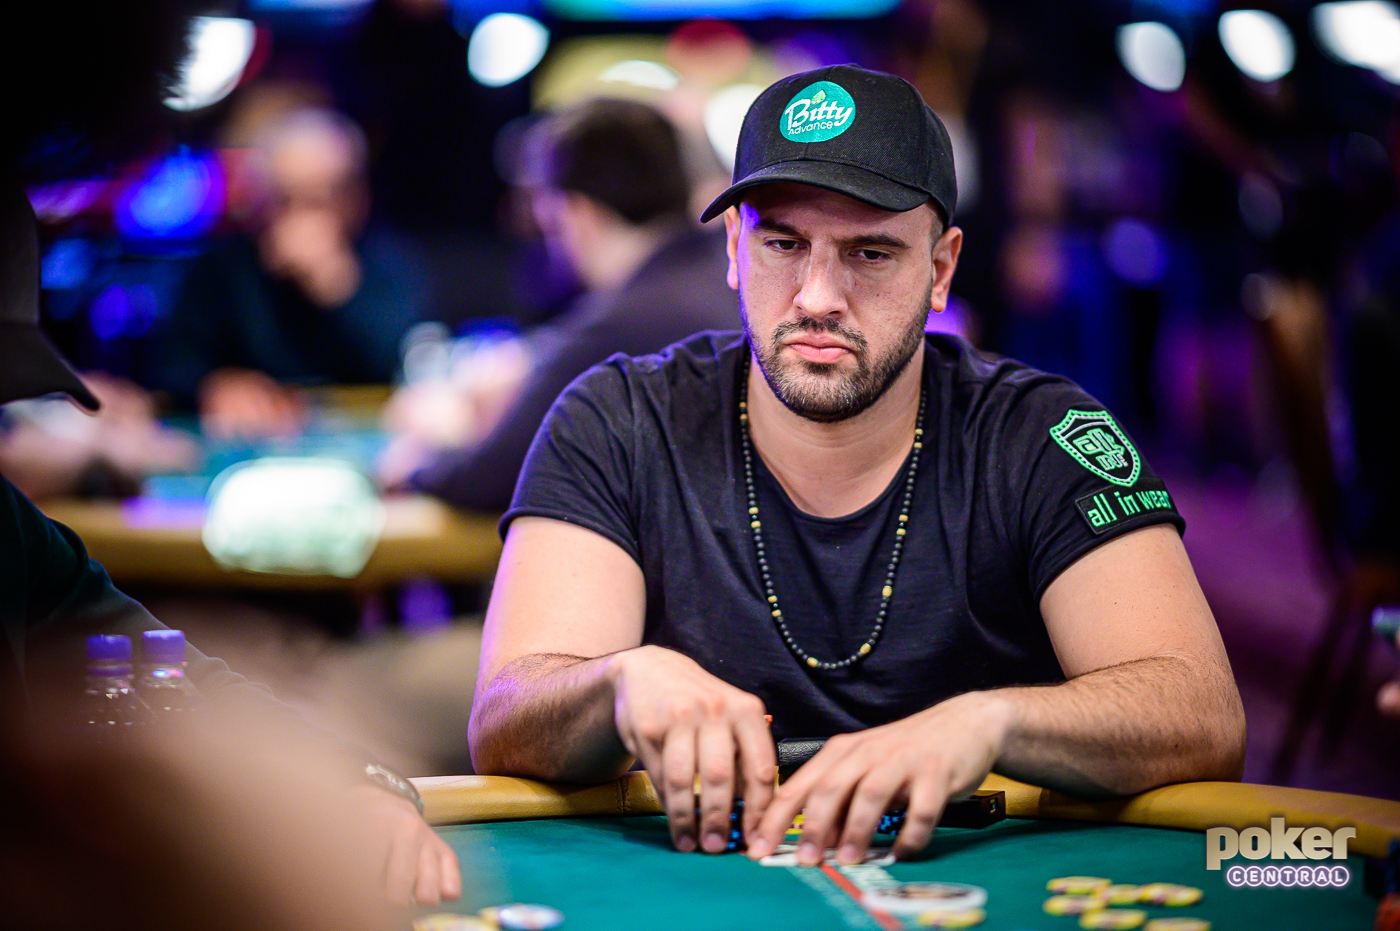 Michael Mizrachi in action during Day 1 of the $50,000 Poker Players Championship.